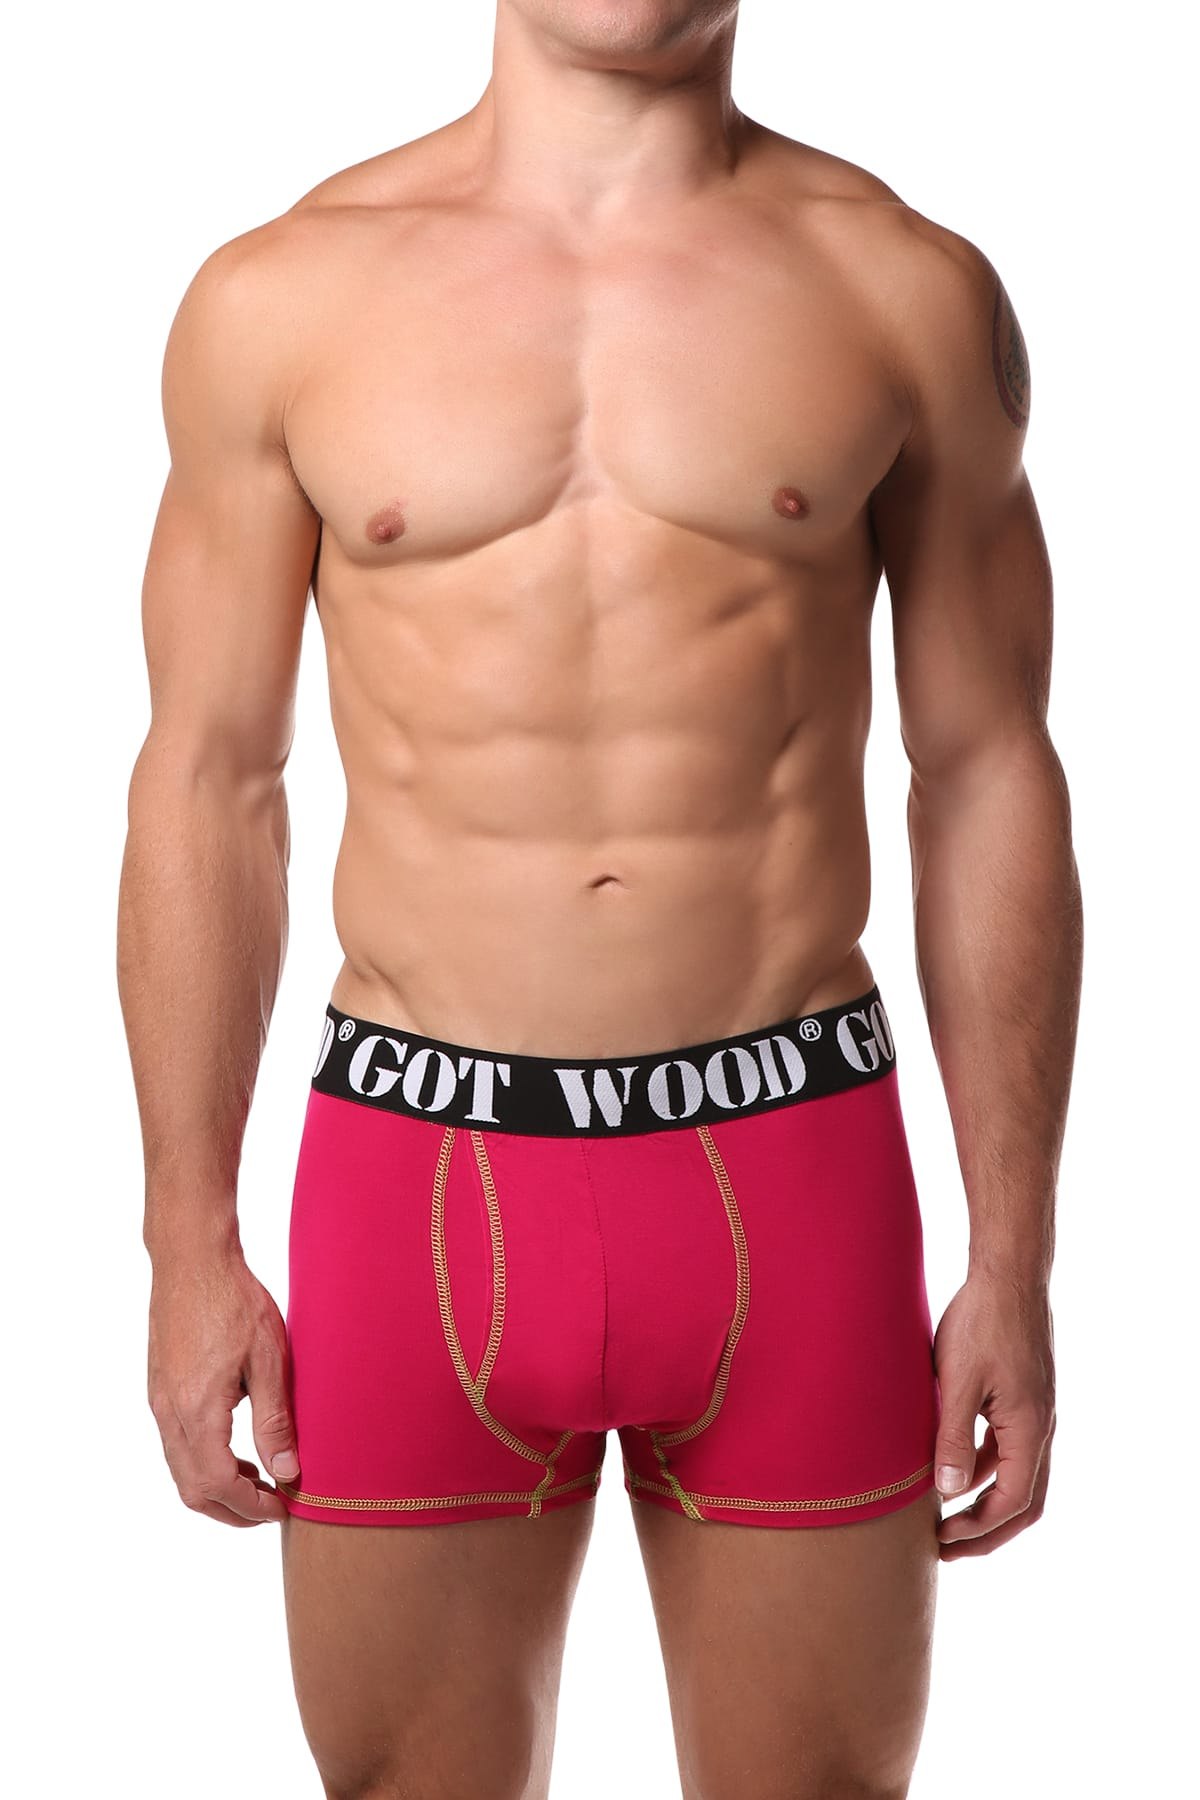 Got Wood Mountain Sunrise Boxer Brief